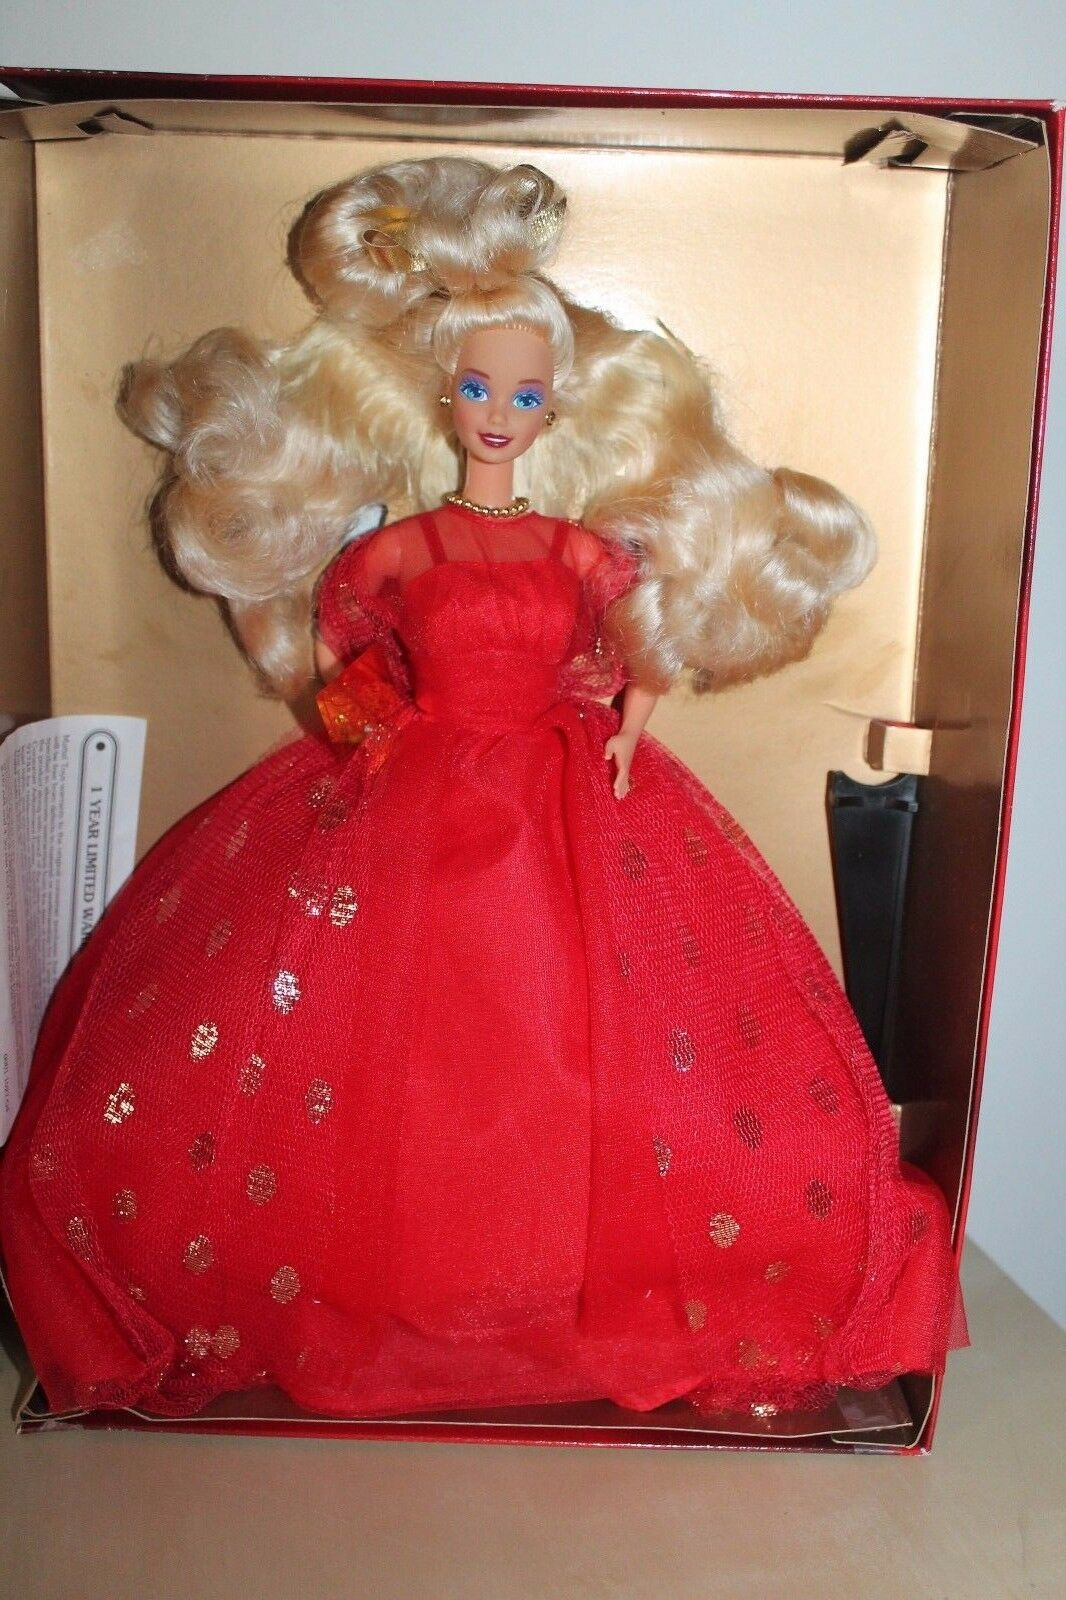 Barbie Evening Flame ROT Gown Dress Special Limited Edition Mattel 1995 NRFB